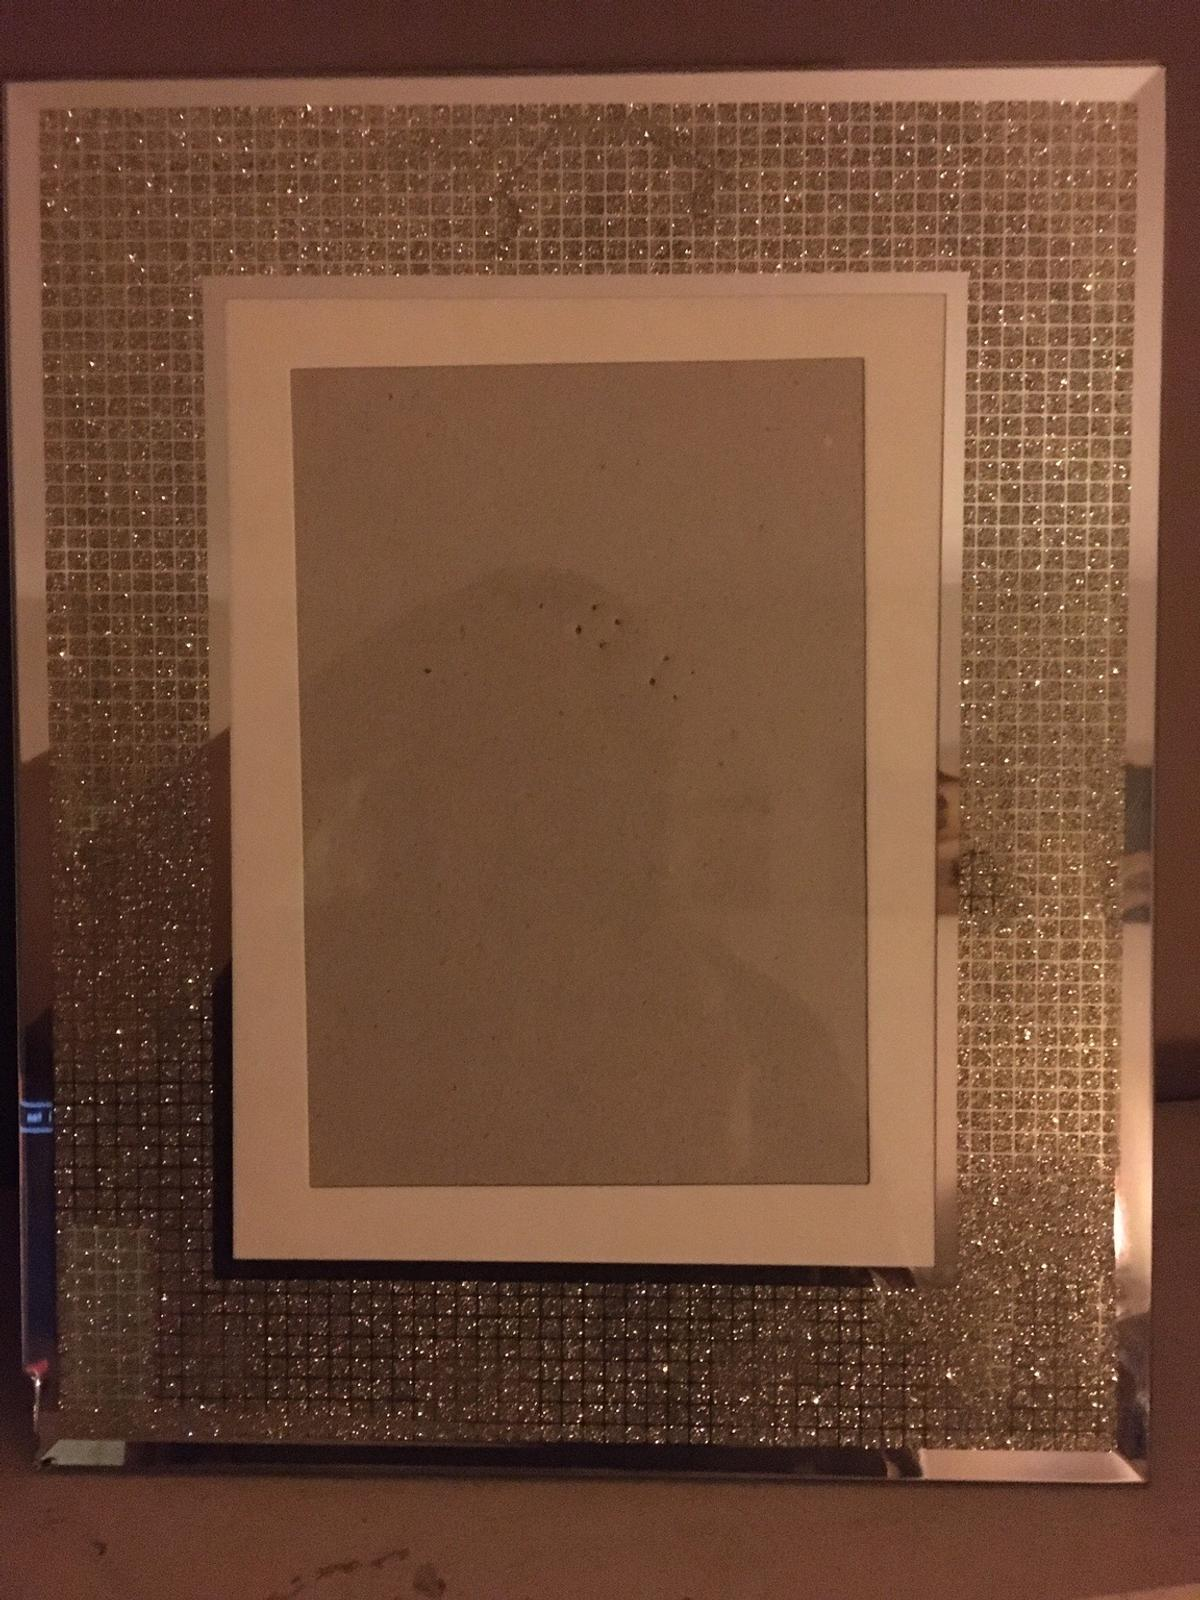 2 photo frames. 1 is slightly chipped on the corner but it's hardly visible. Picture on to show.